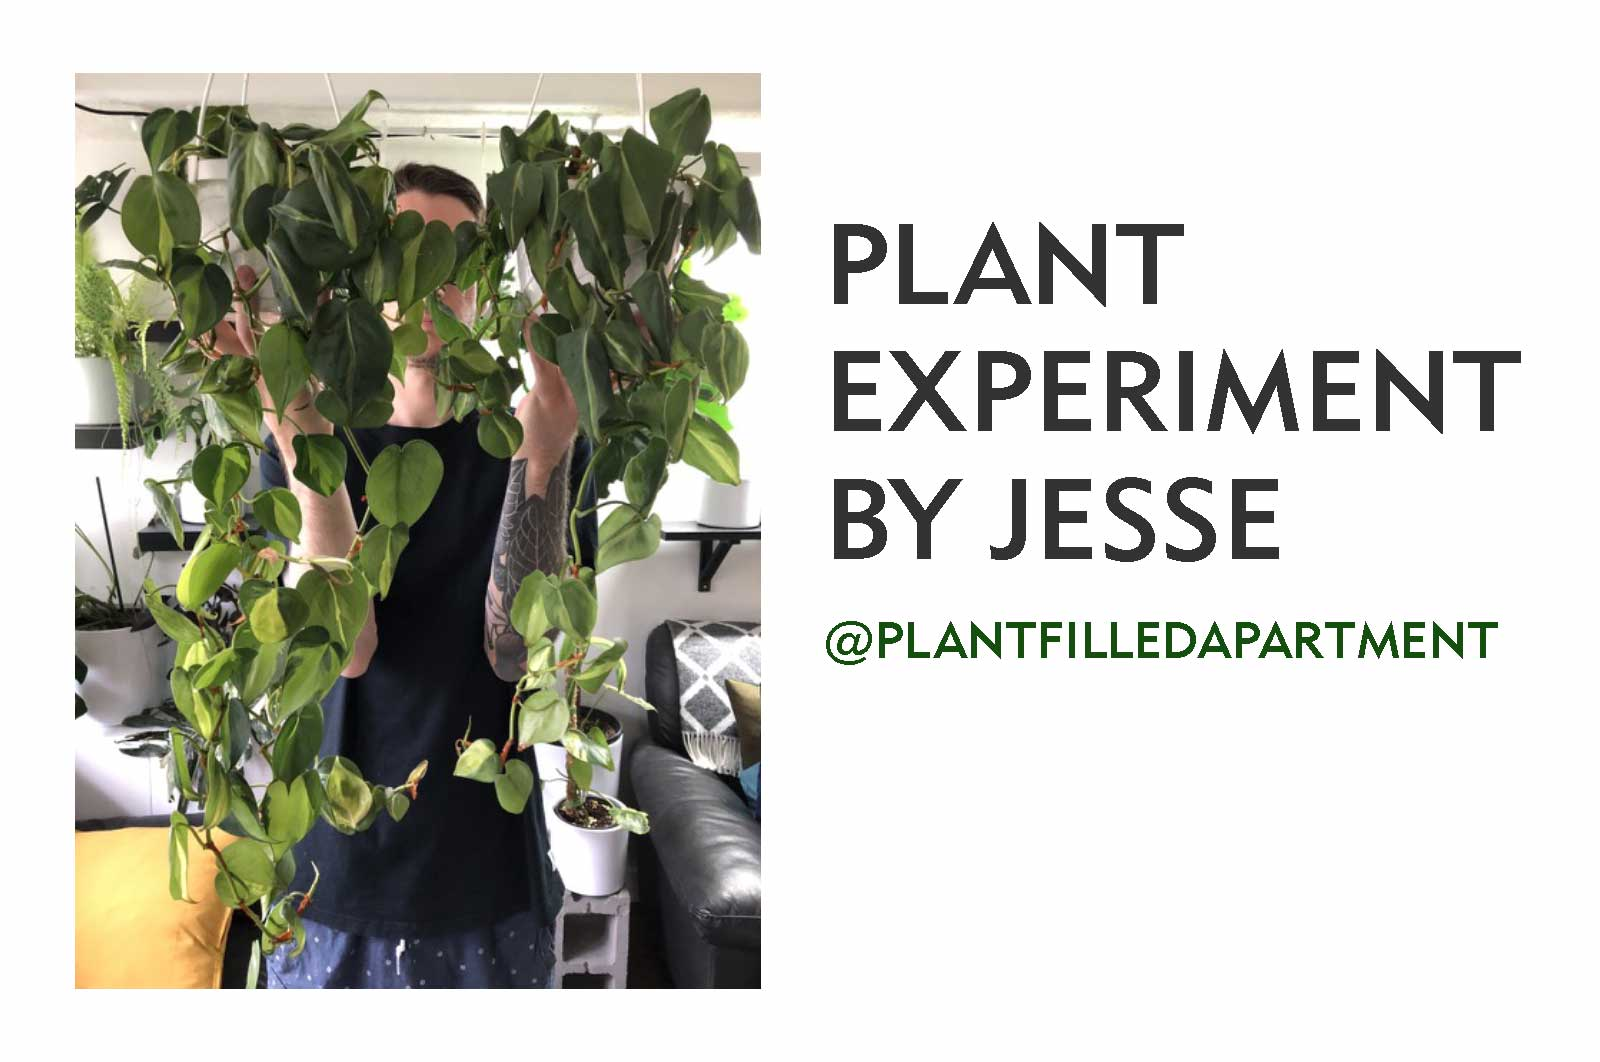 Jesse_plantfilledapartment_marphyl_experiment_TITLE